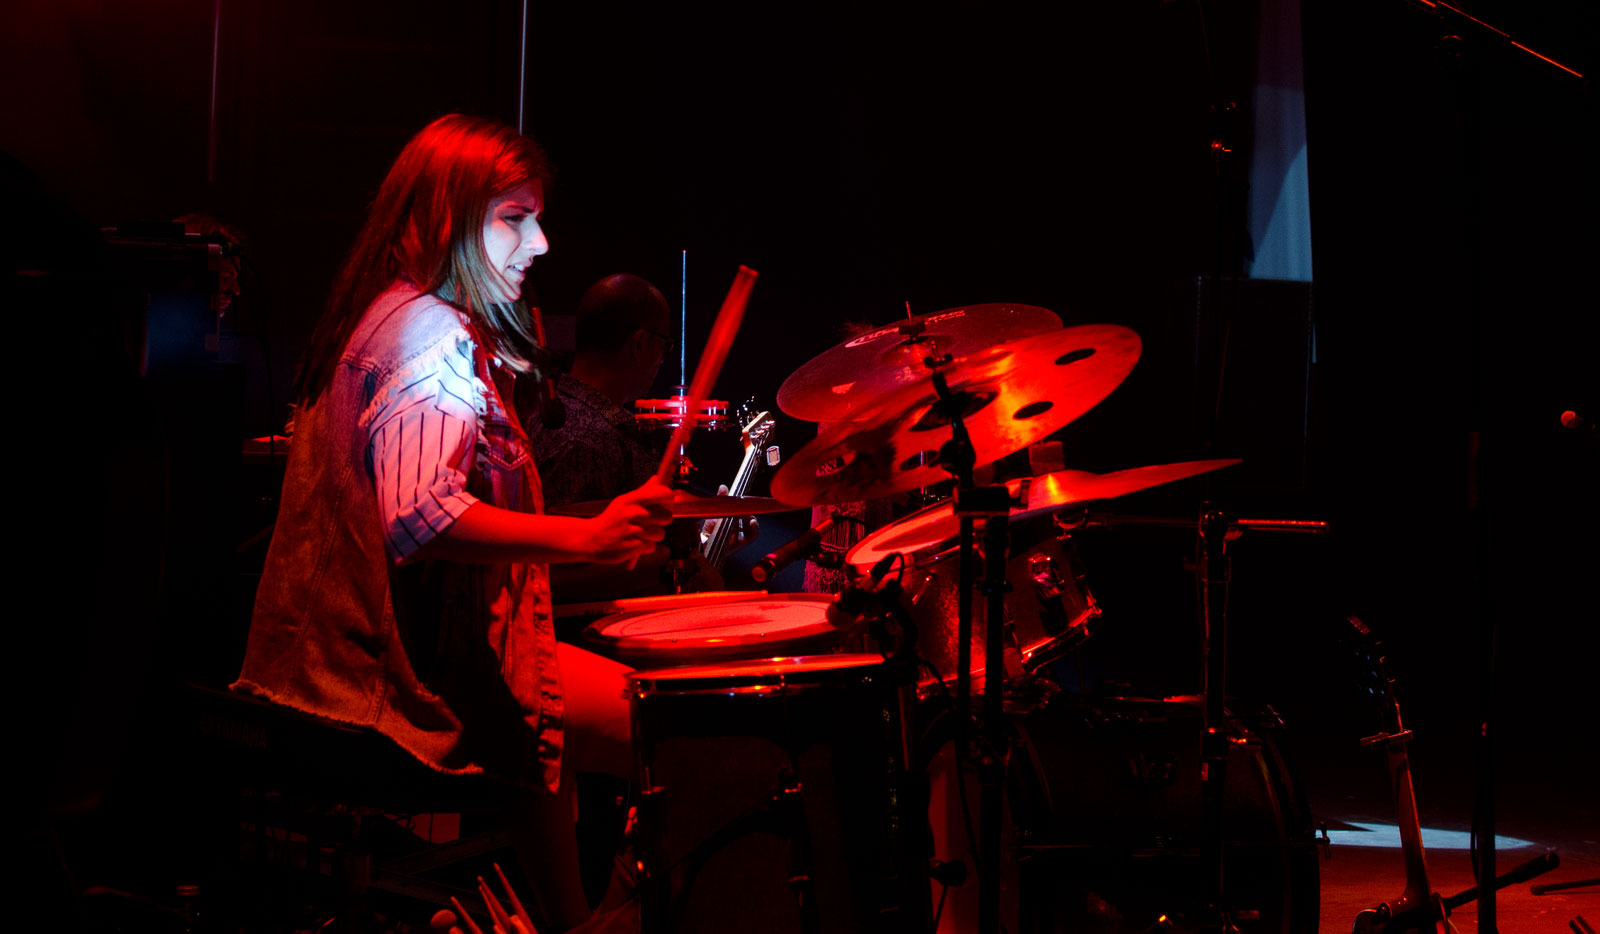 naima acuna, drummer performing in Cambados